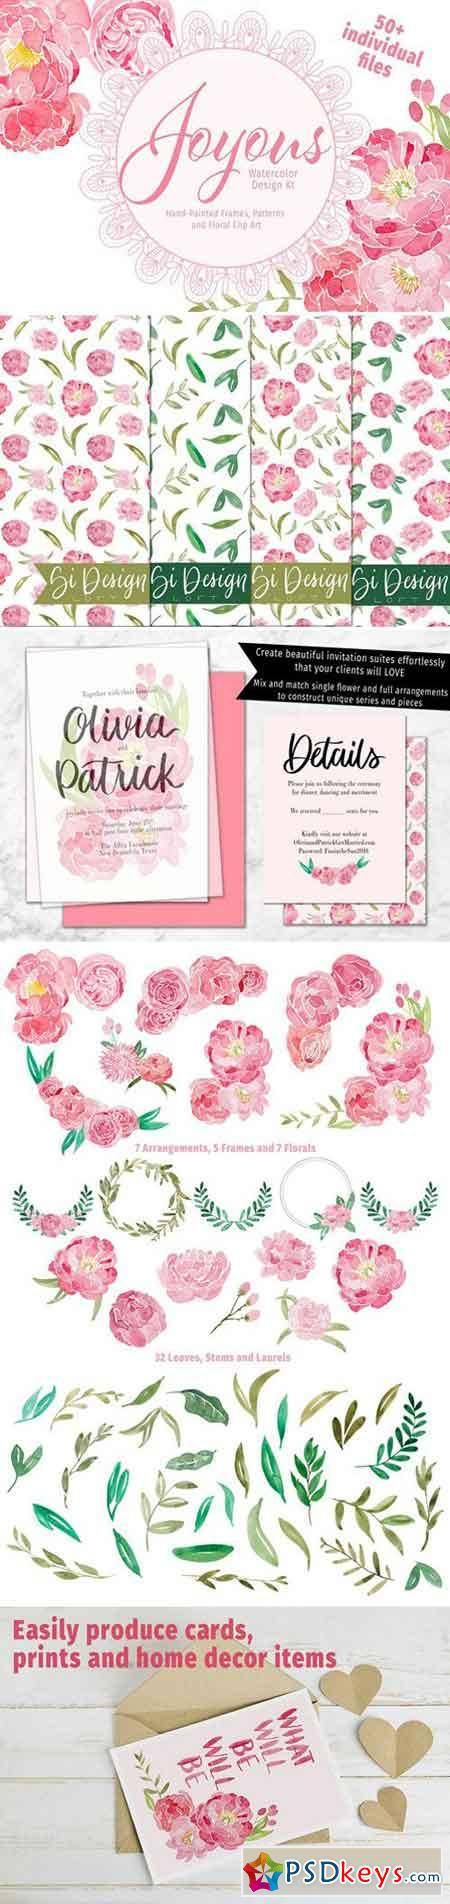 Joyous Watercolor Design Kit 2254968